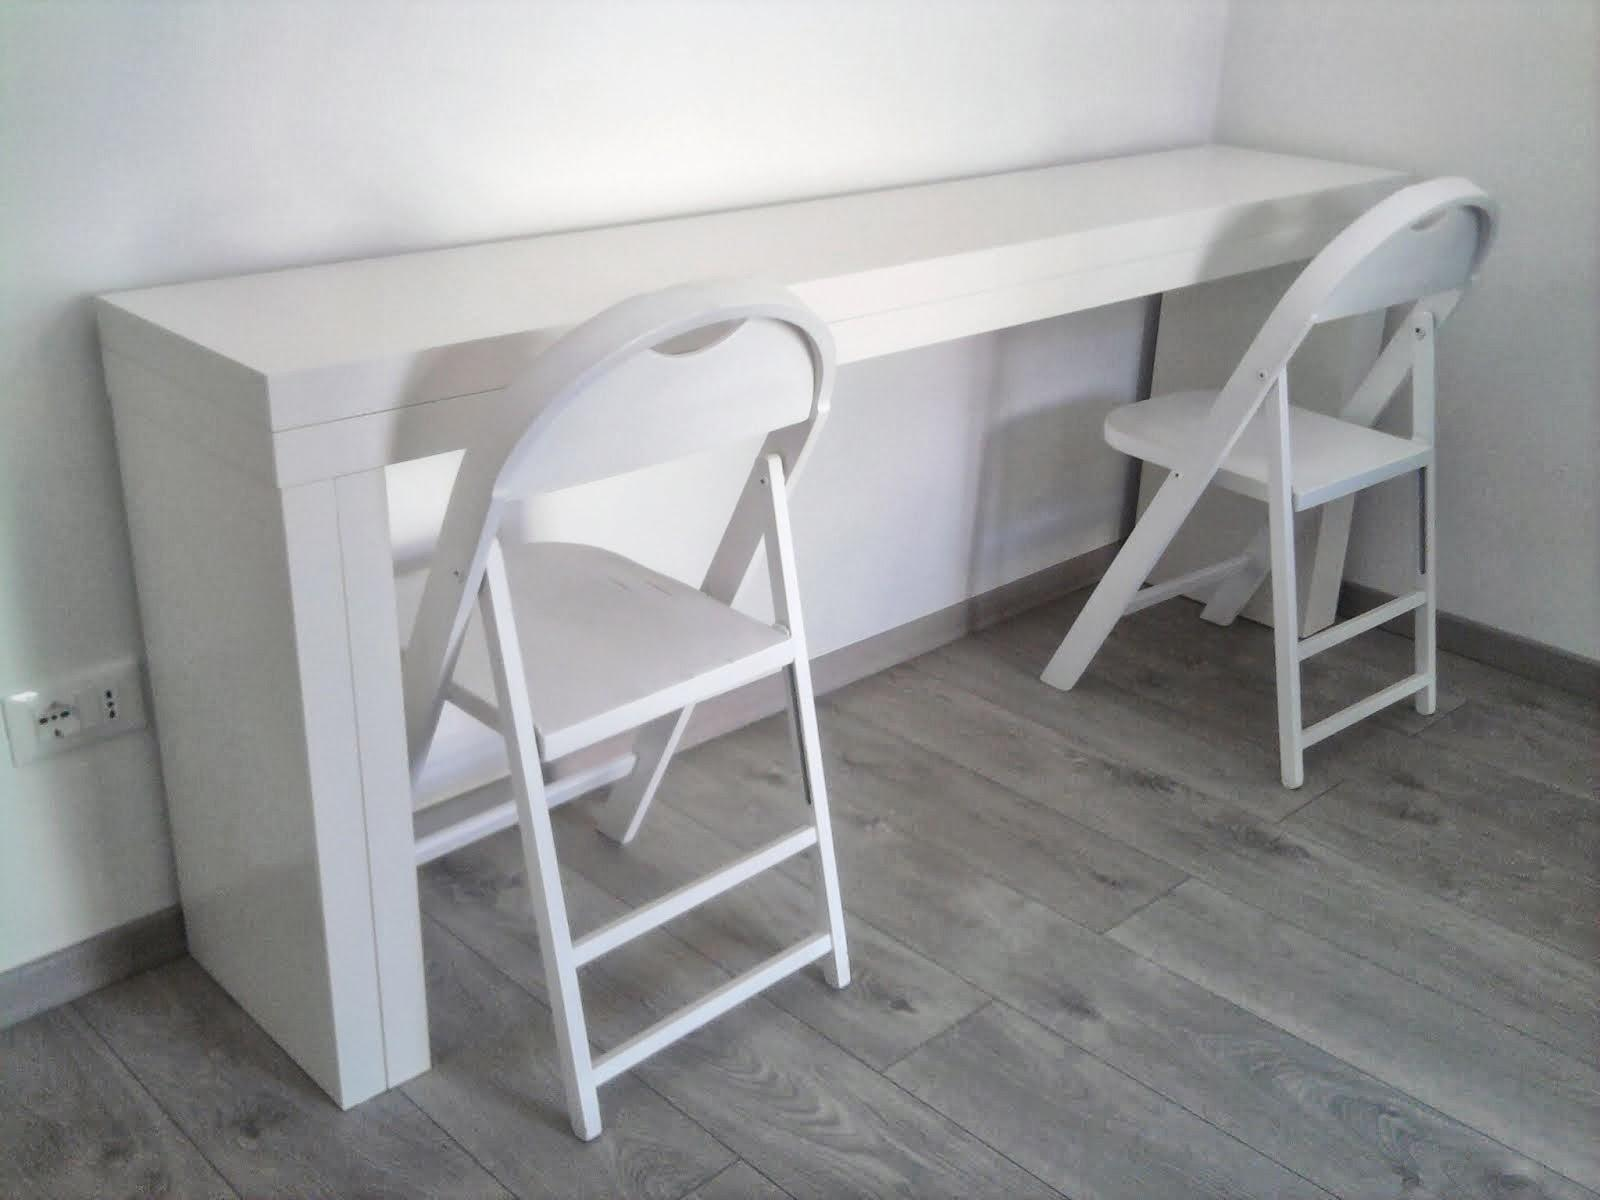 Double Malm Console Becomes People Table